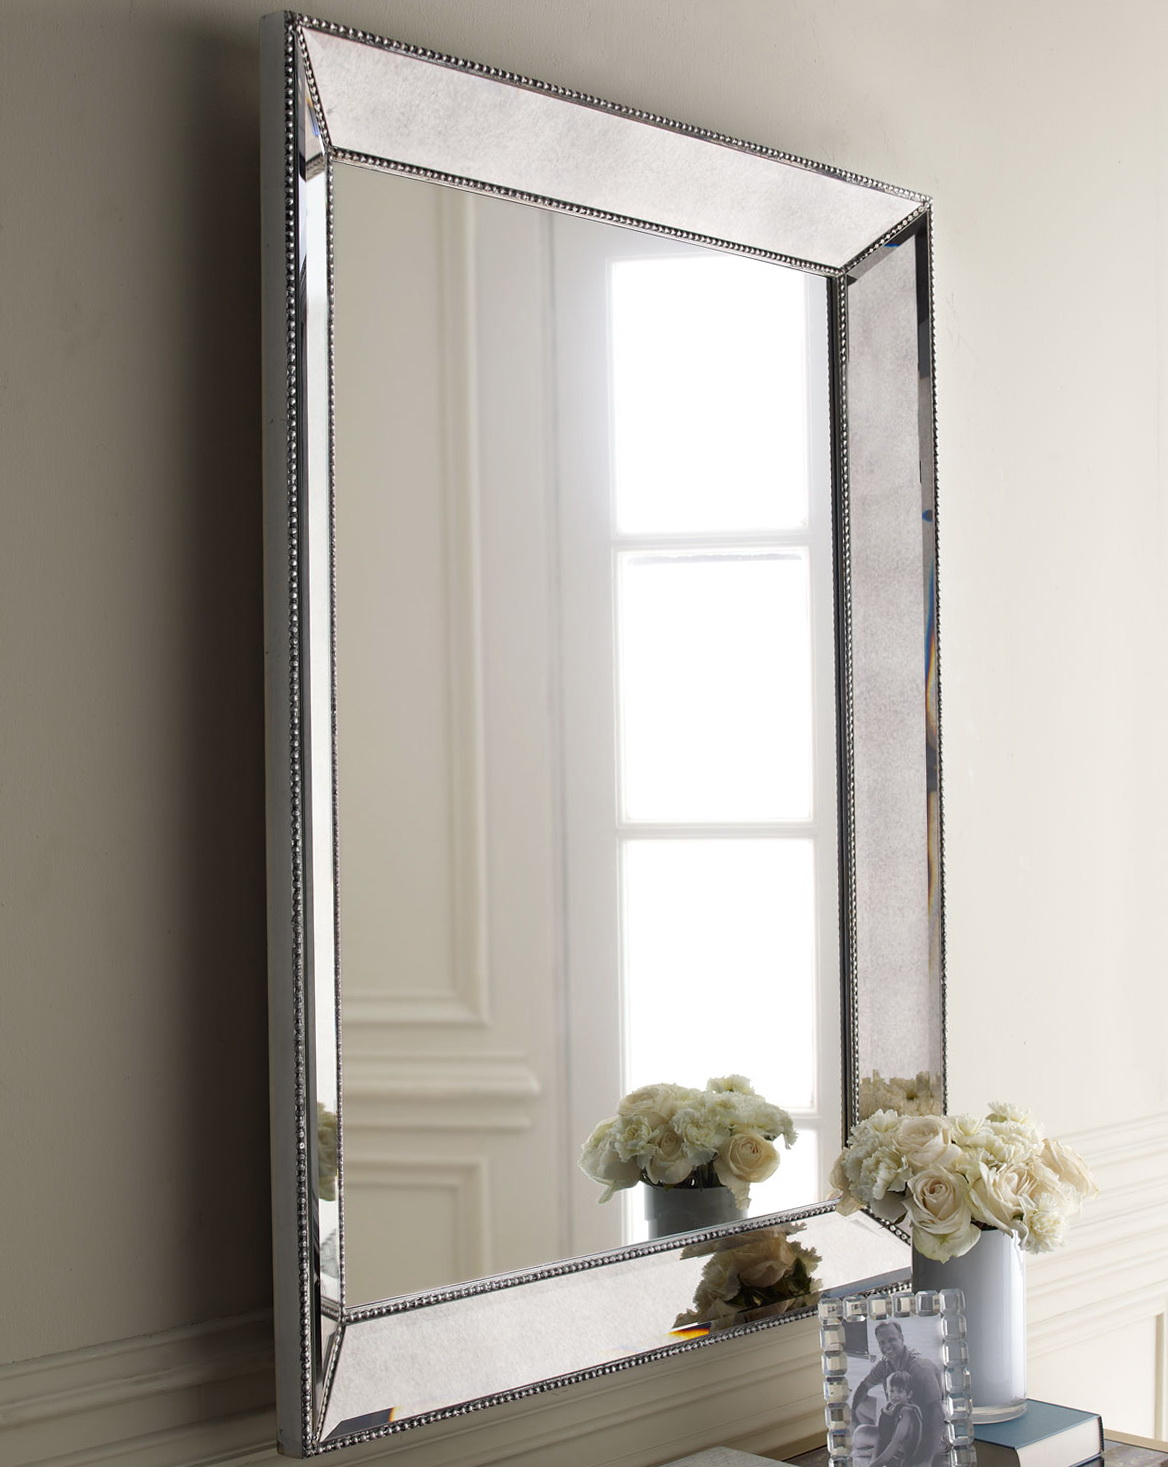 Silver Framed Mirror Bathroom Home Design Ideas